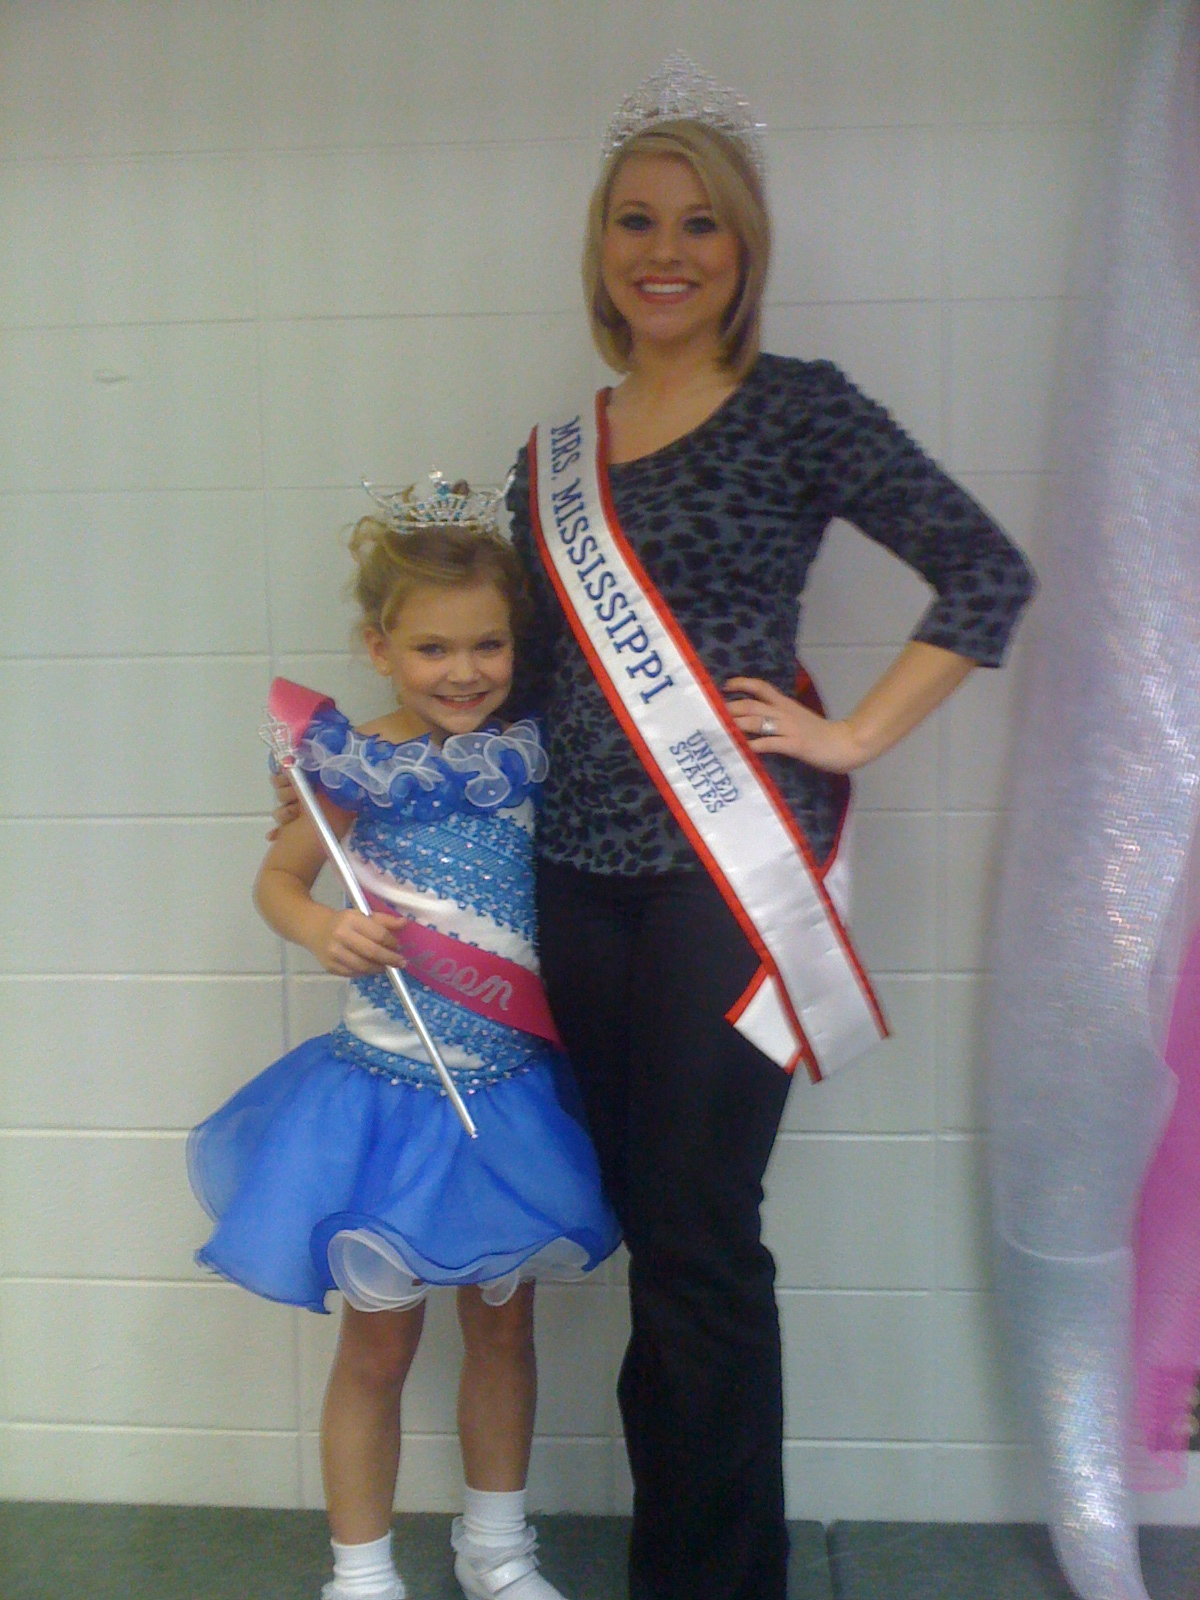 Little Miss America pageant